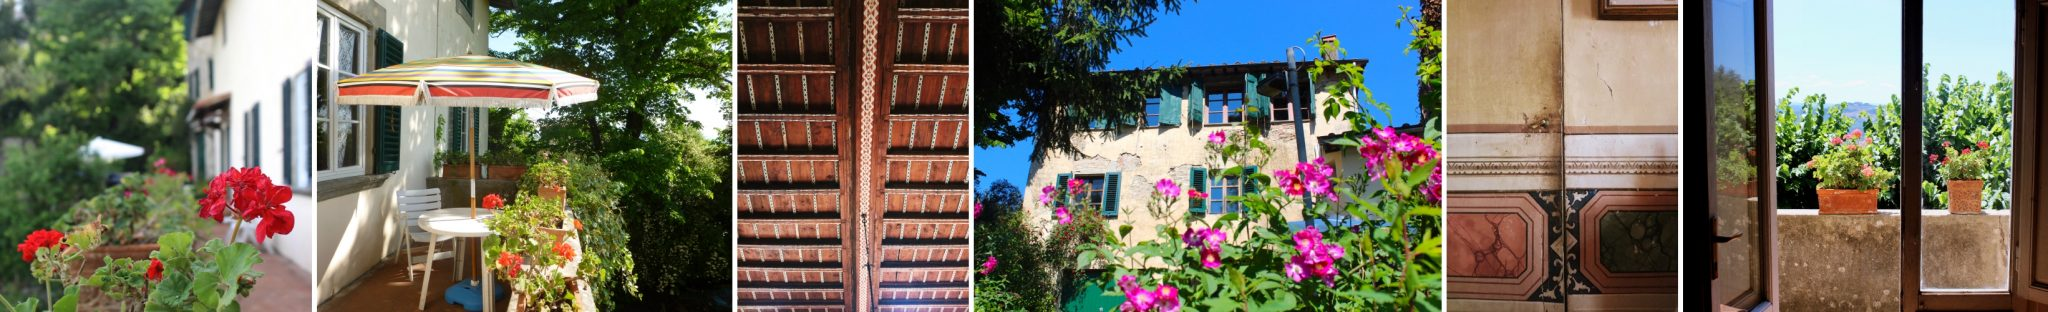 Impressions of our B&B La Rocca in Carmignano, Tuscany (Italy)